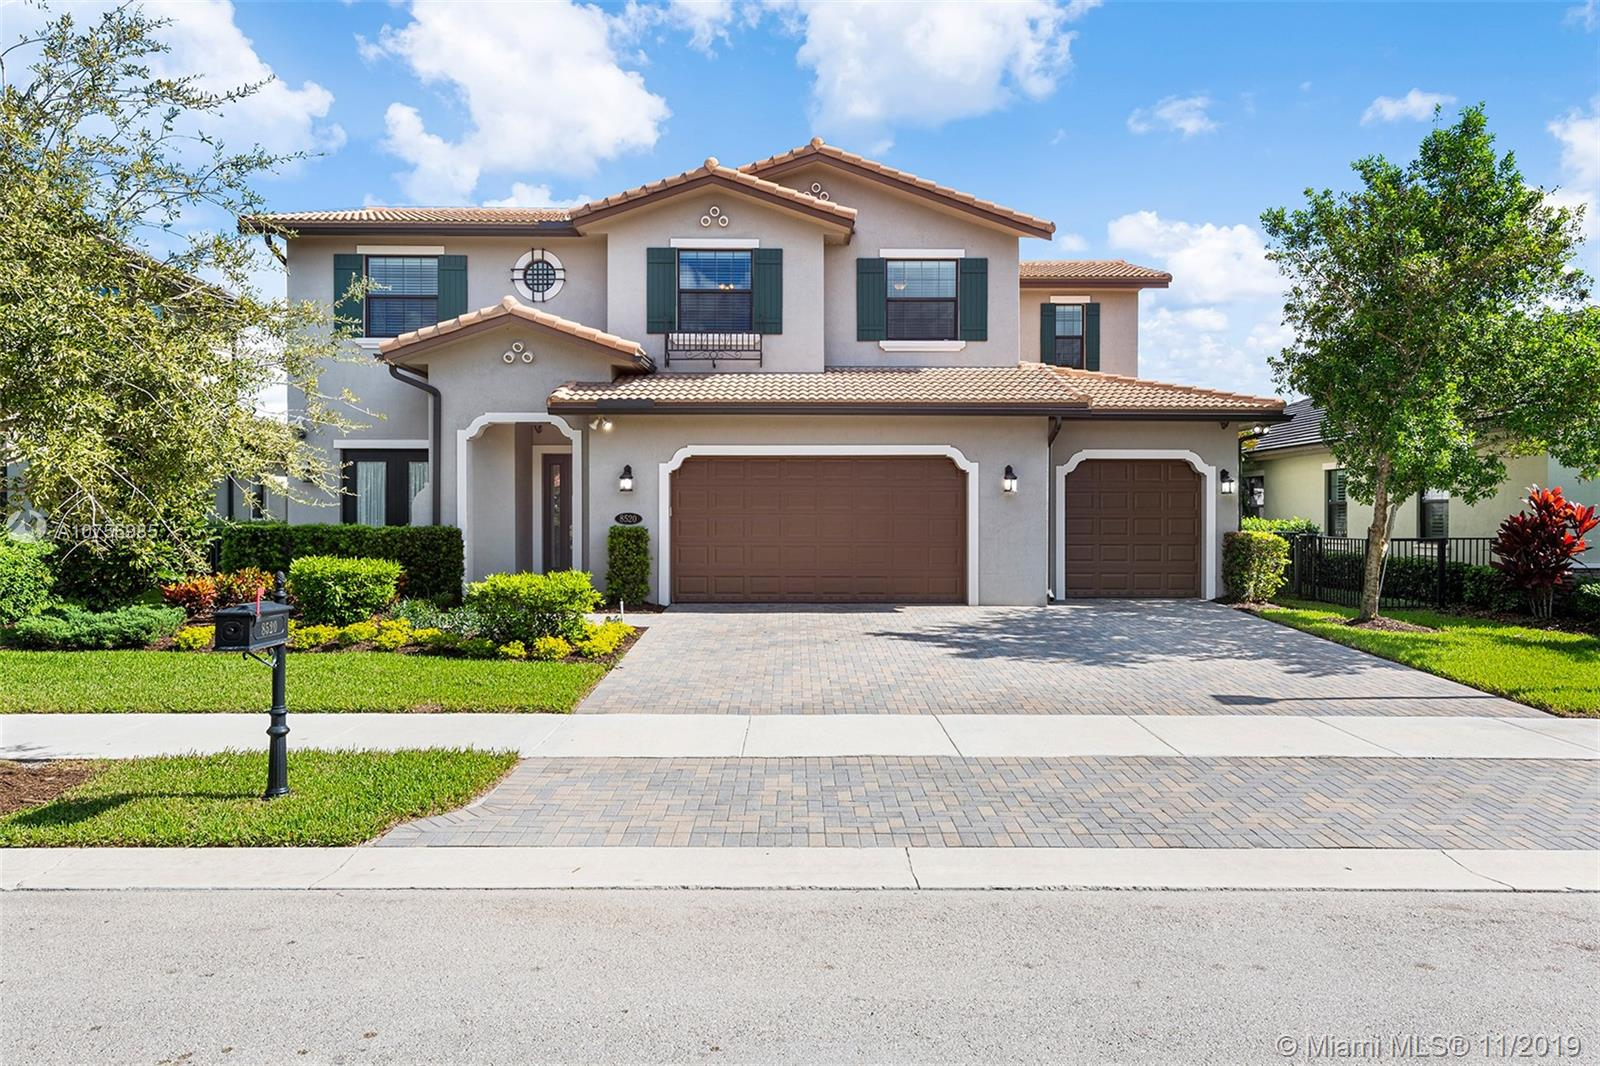 "This new Parkland lakefront home features an open concept living and kitchen area with SS appliances, granite countertops, a gas range and a massive island. 24"" porcelain tiles throughout the common areas, custom built-ins, a whole house generator, with handicapped accessible finishes, and $235,000 in upgrades. Expansive screened in patio with East exposure and a heated salt-water pool perfect for entertaining. The large master suite combines water views with a luxurious bathroom and walk in closet. The gated neighborhood of Watercrest includes a grand clubhouse with a beach-entry pool and spa, a dock, two tennis courts, a basketball court, kids play area, gym, steam room, ballroom and a barbecue pavilion."